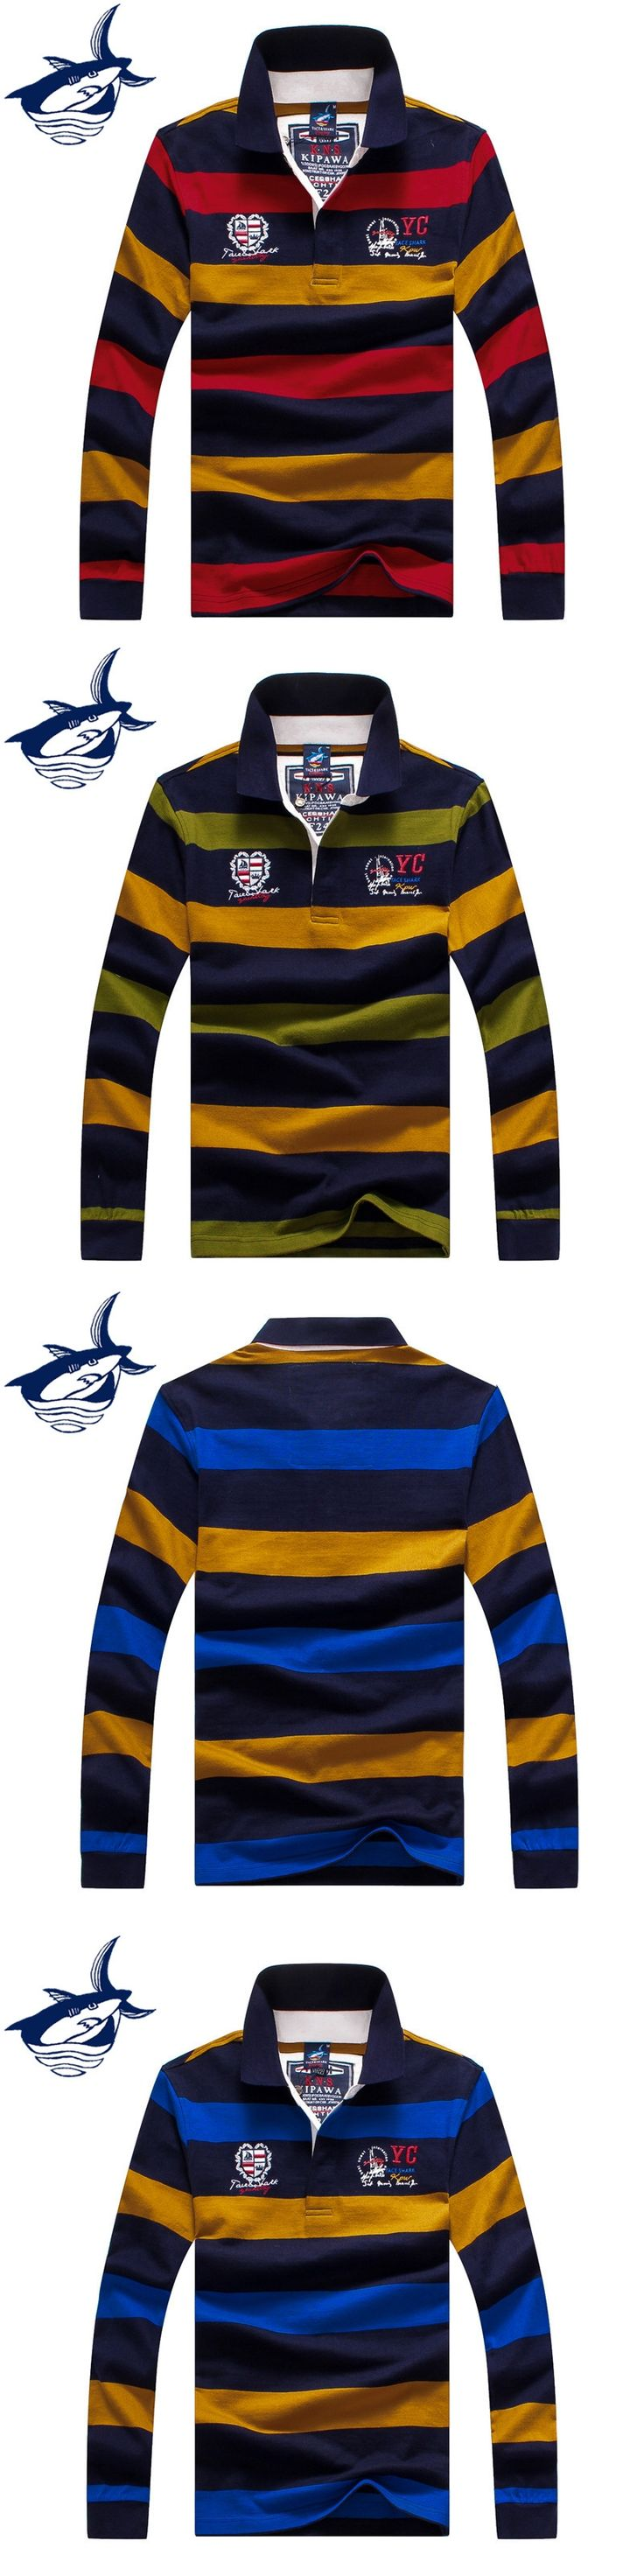 Top Quality Brand 2016 New Fashion Tace Shark Men Sweaters and Pullovers Famous Brand Half Zipper Sweater Men plus size M-3XL